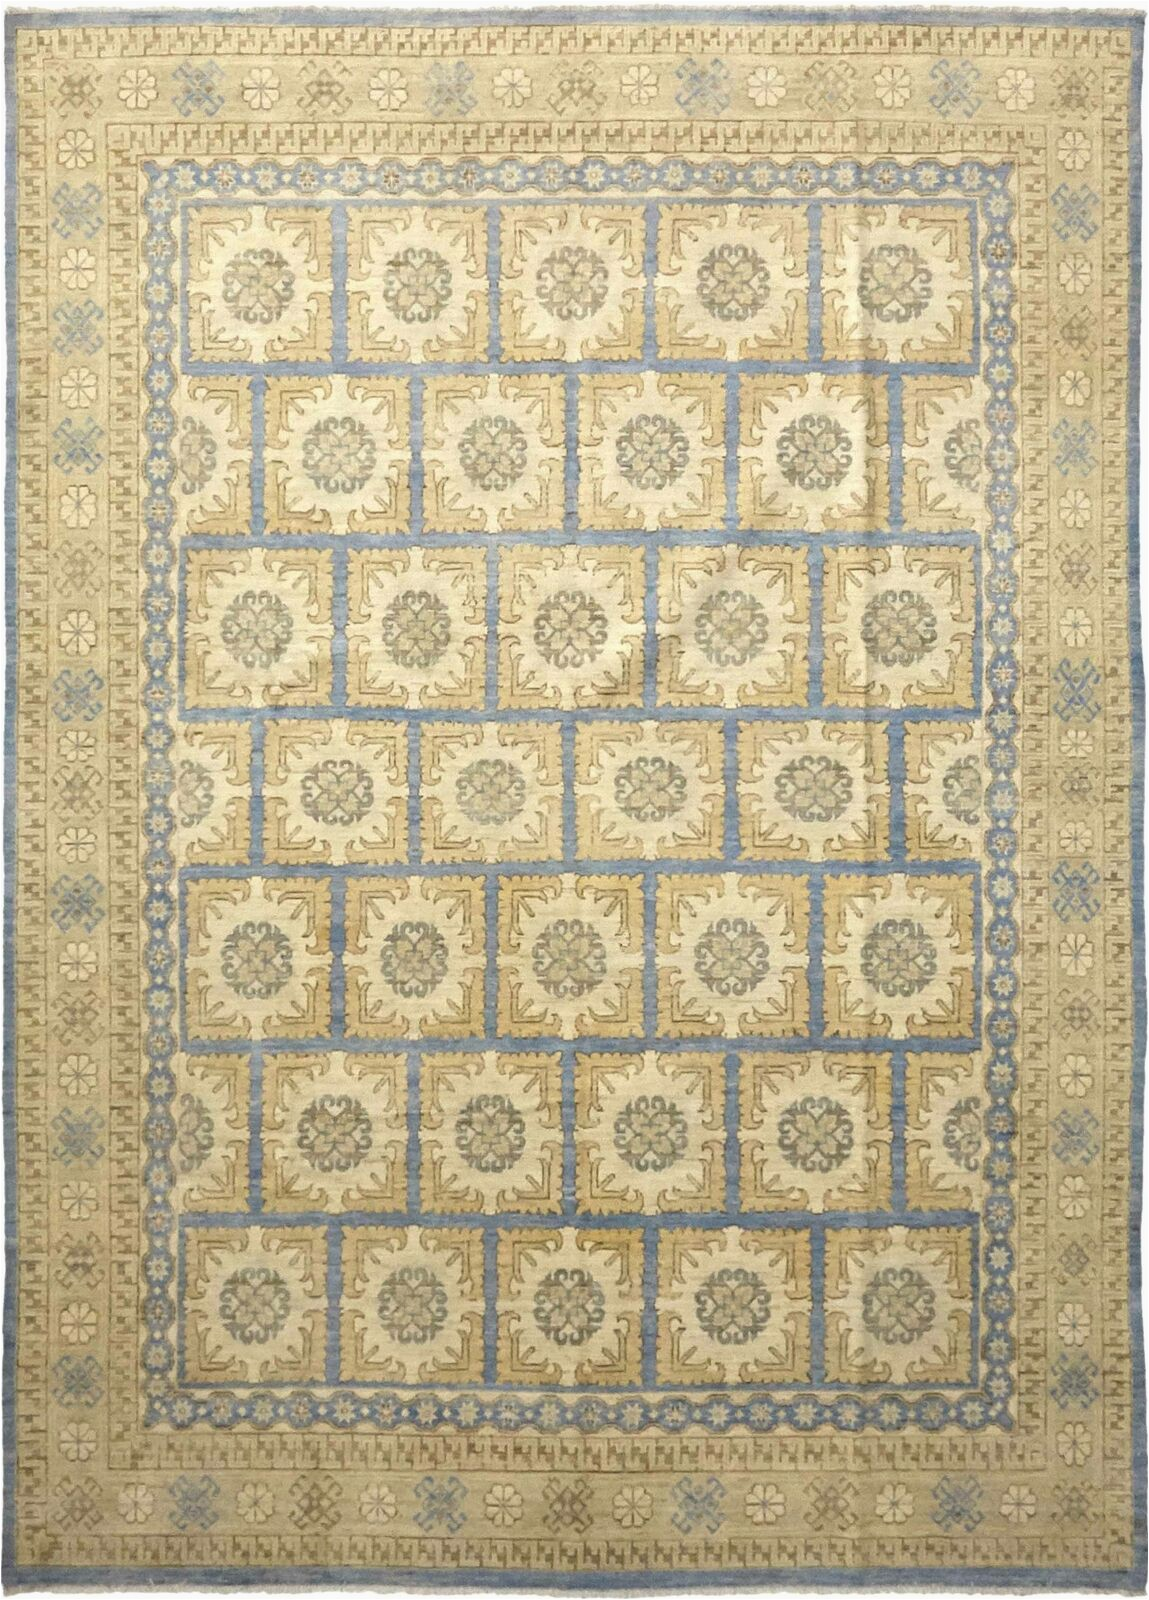 9 Ft X 12 Ft area Rug solo Rugs Khotan Hand Knotted area Rug In Hazelnut Wool 9 X 12 Ft